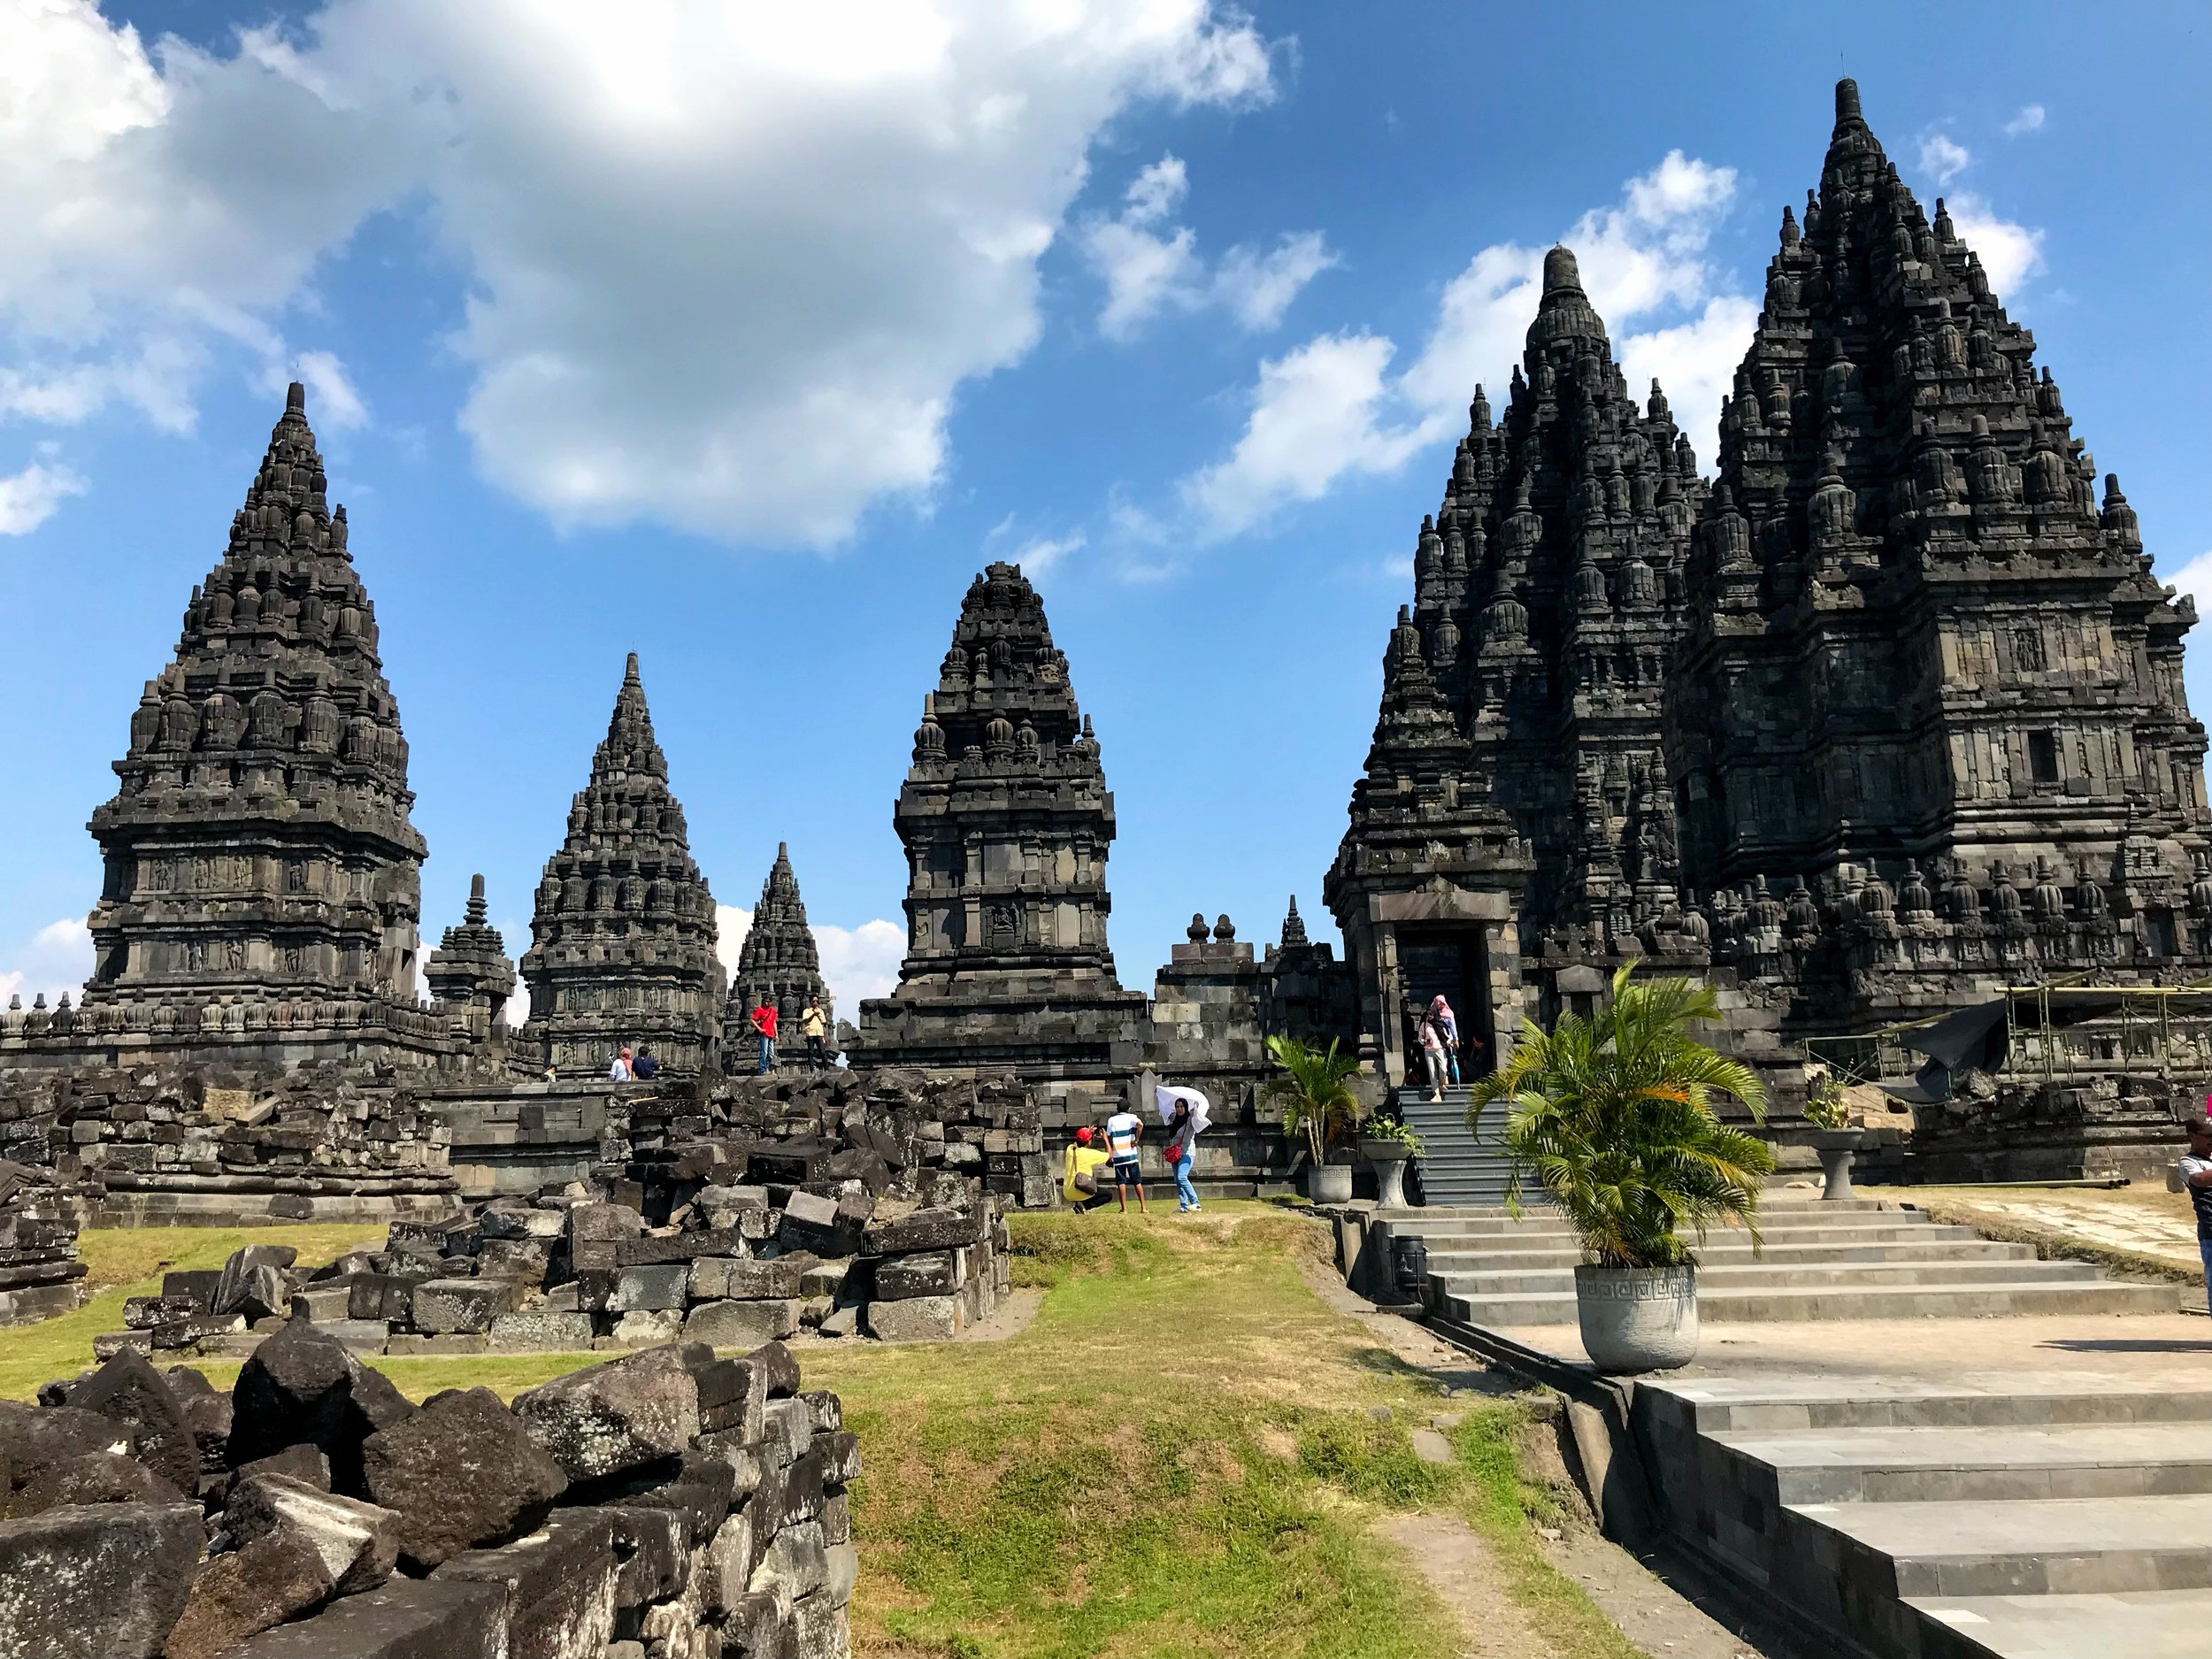 The ornate black stone temples create an imposing silhouette